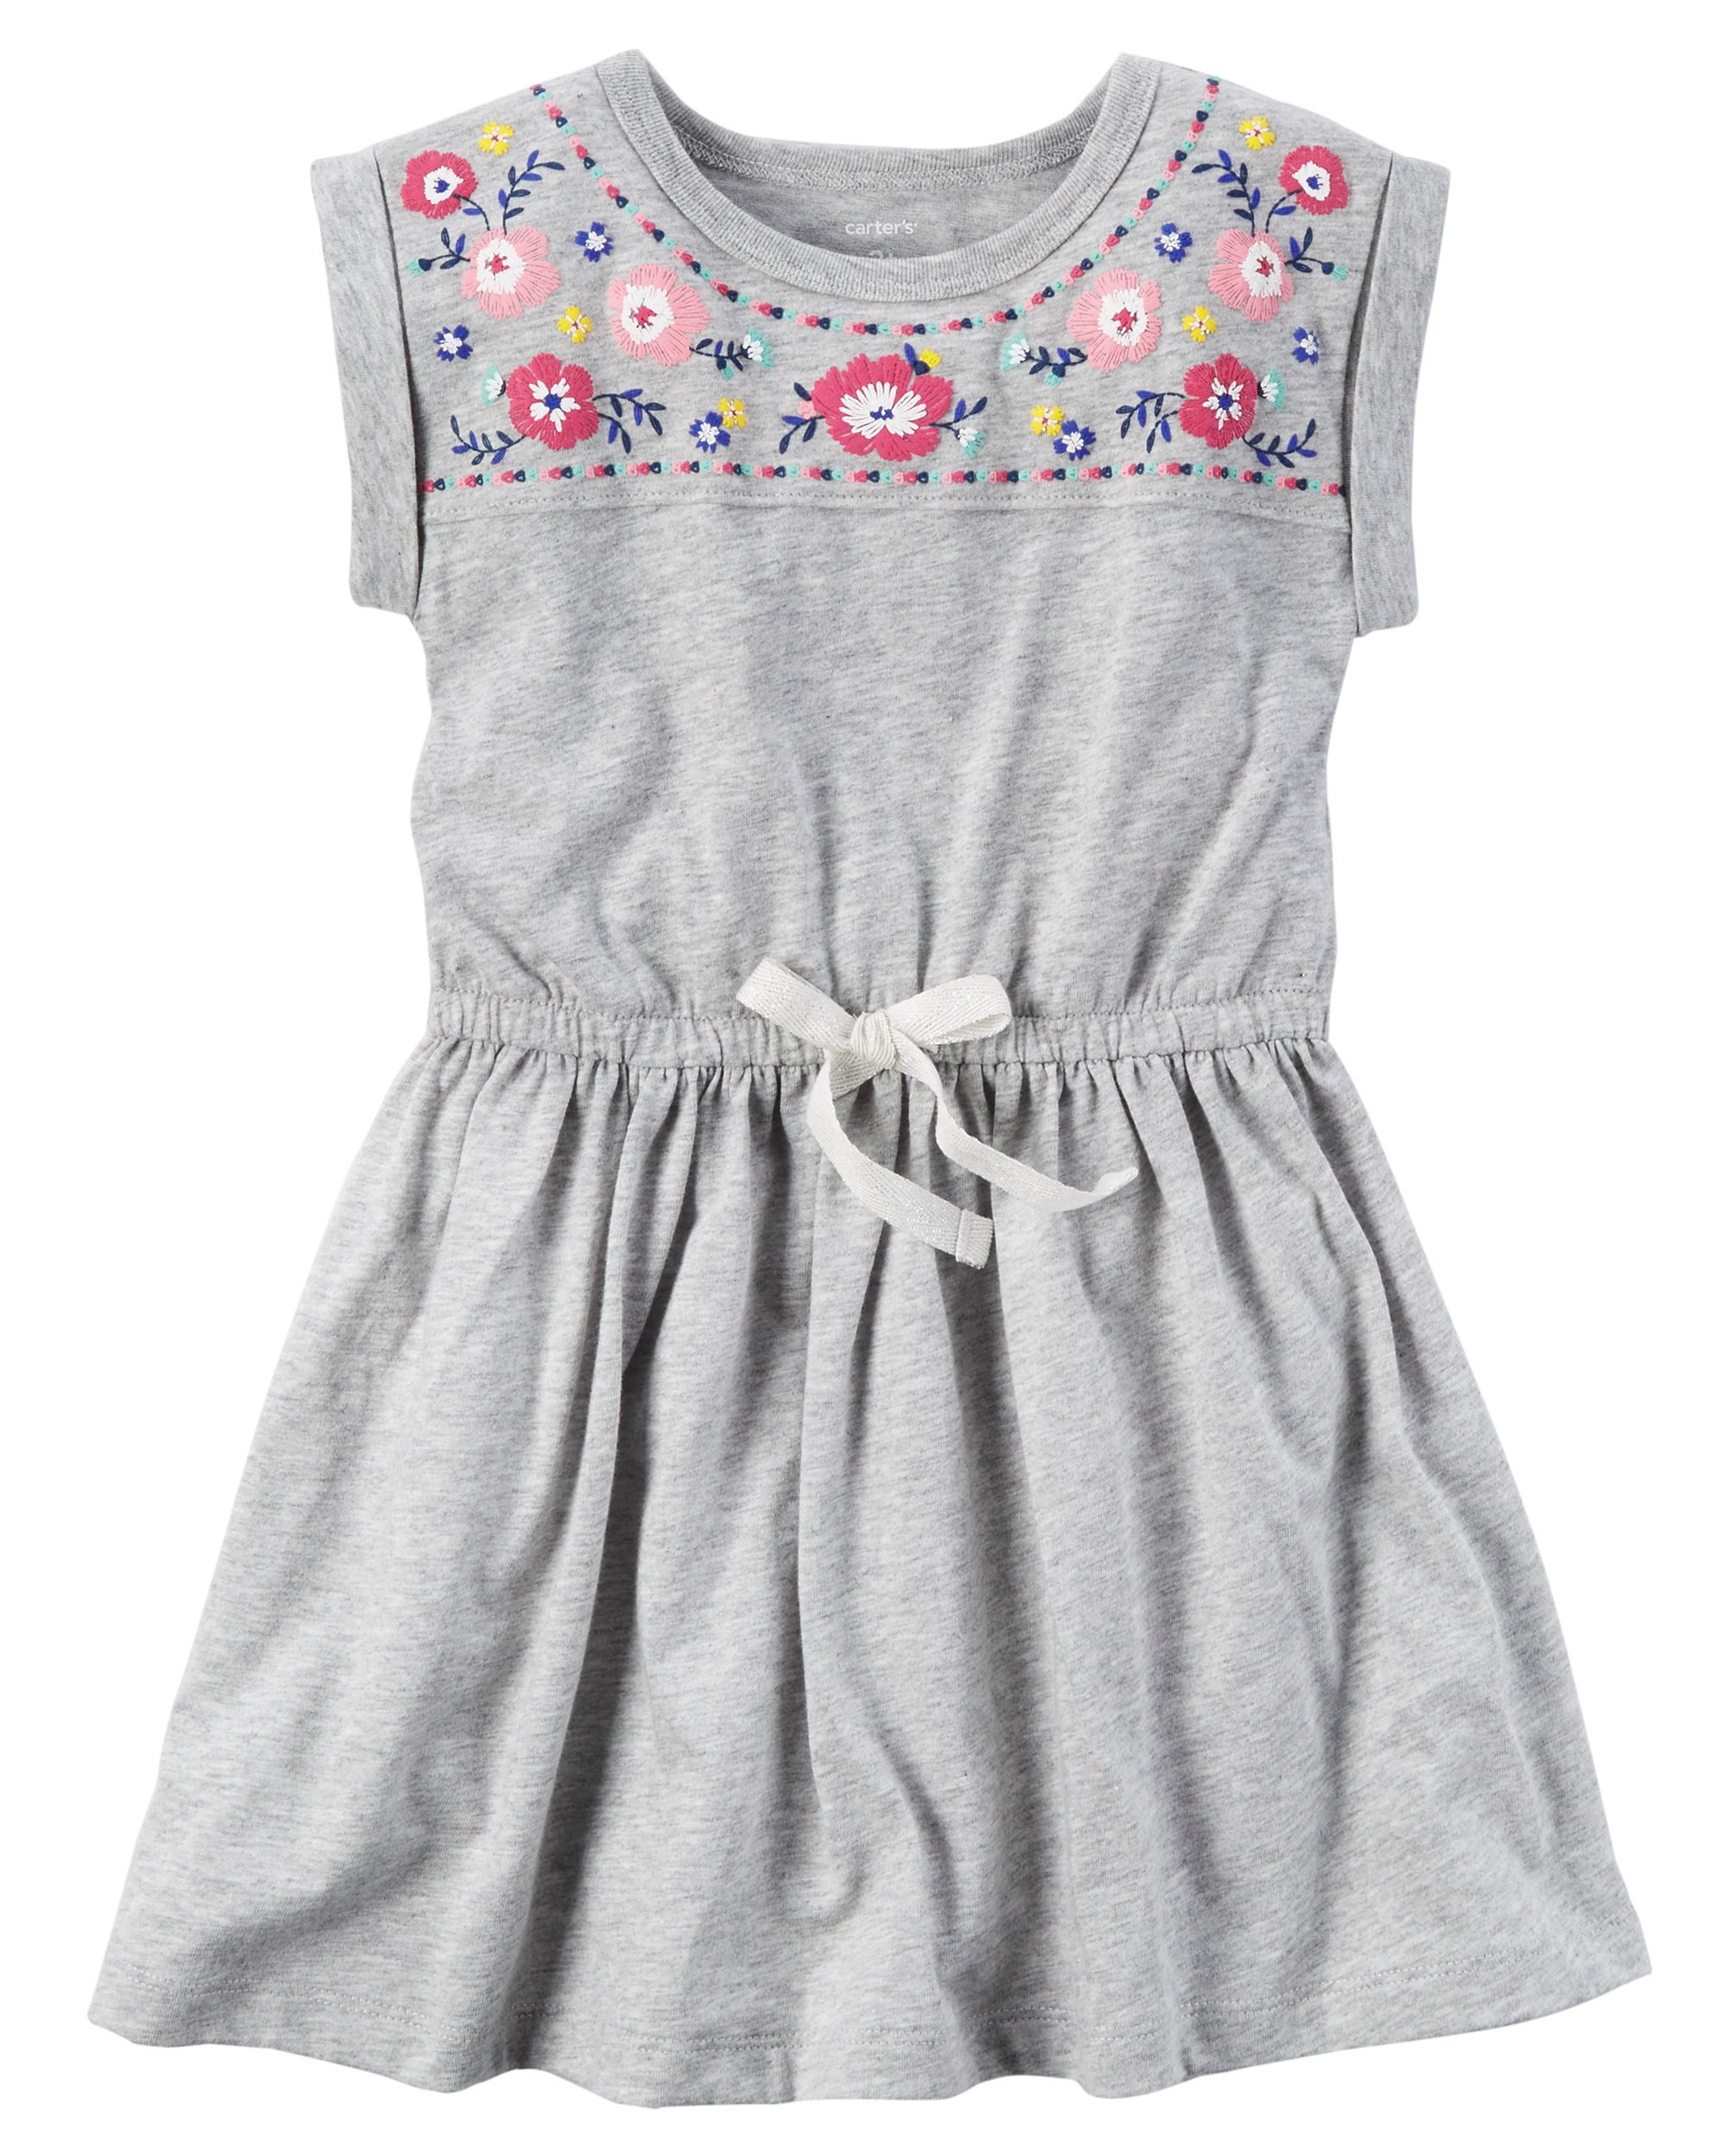 Pin by jenny g on girls clothes pinterest girls dresses